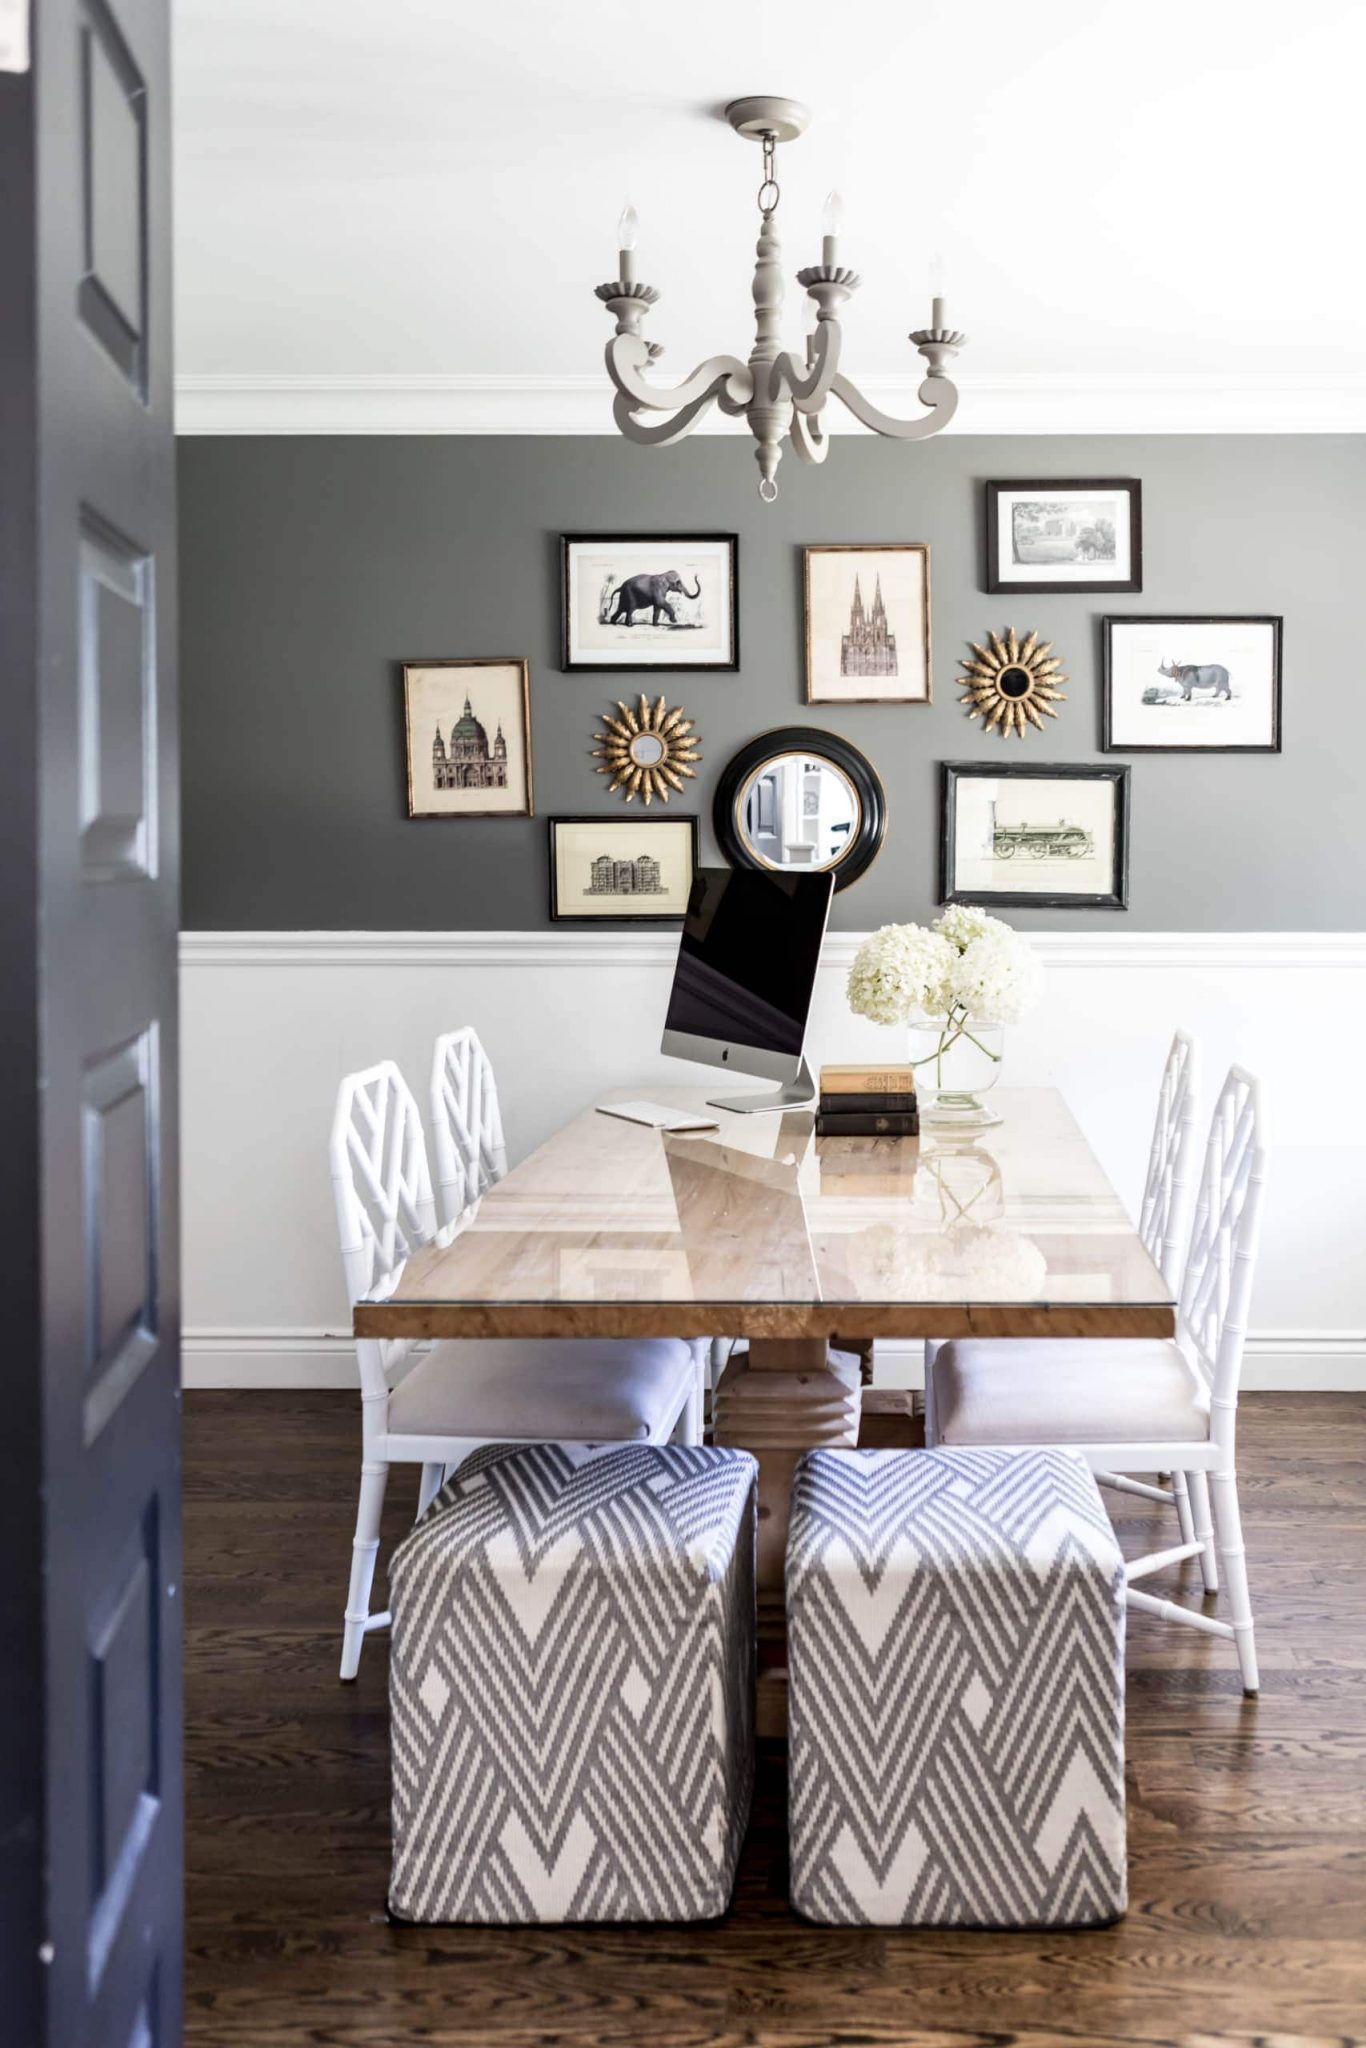 Black and white dining room with pictures of animals on the wall